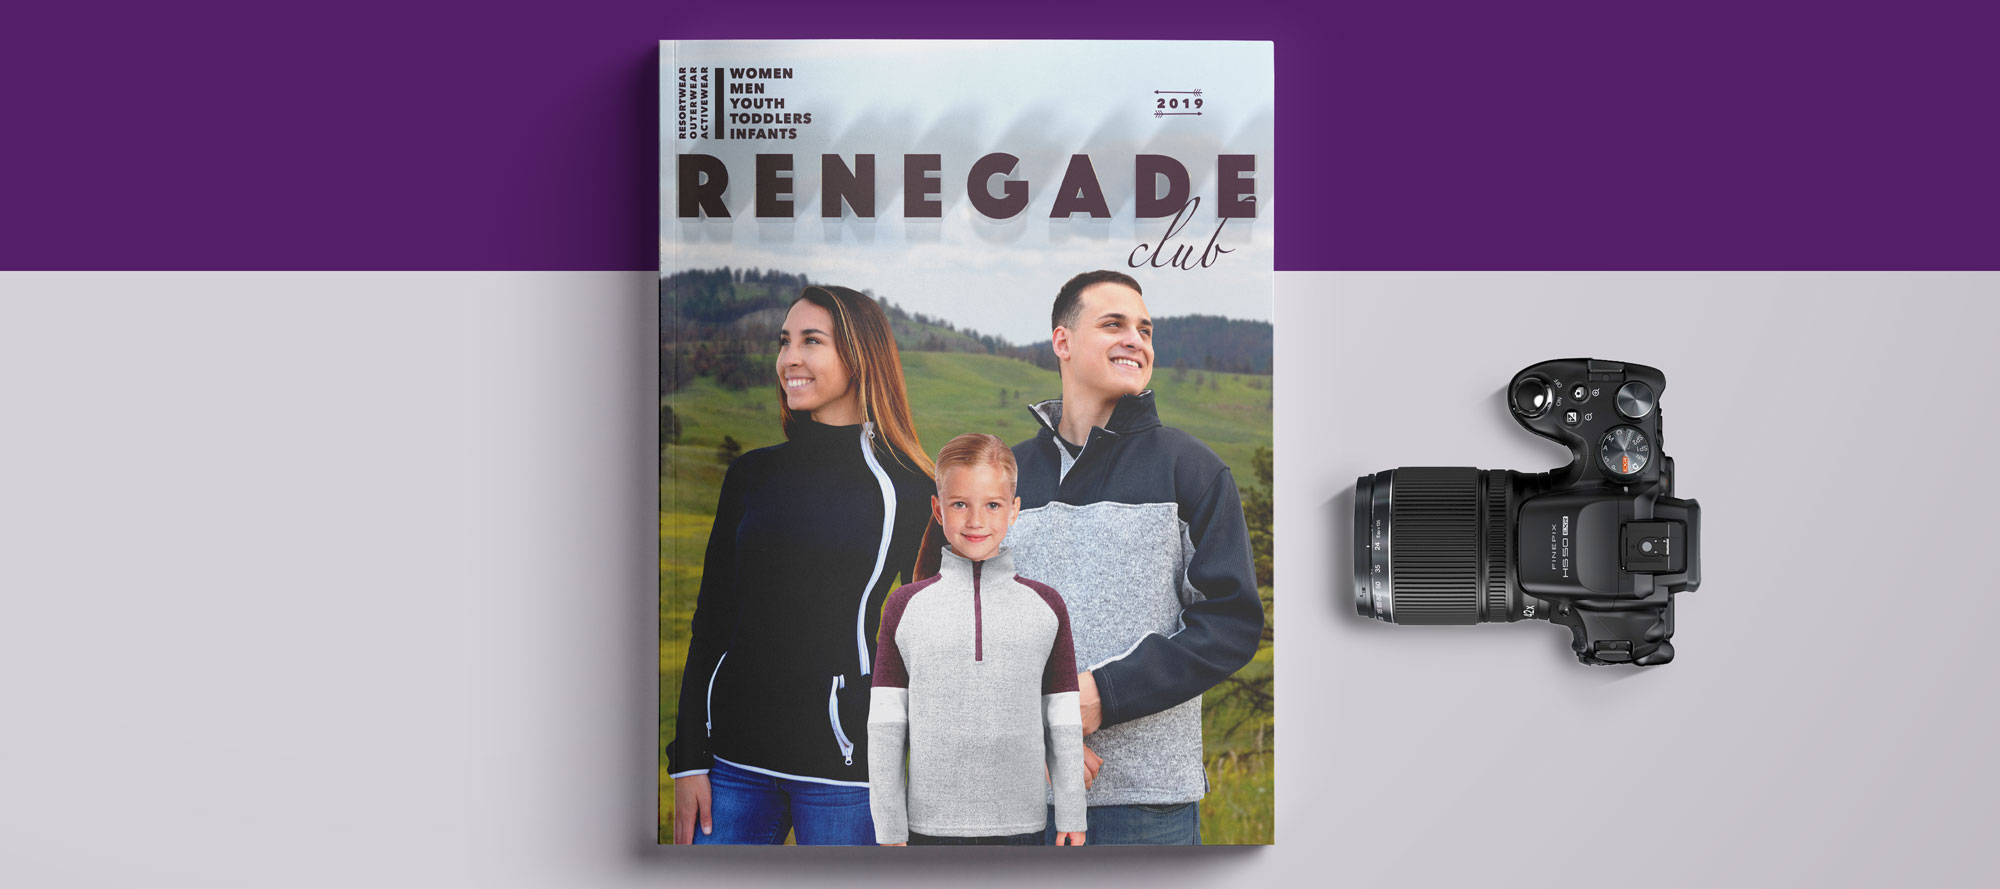 ksengo art director branding 2019 project, renegade 2019 catalog purple cover camera